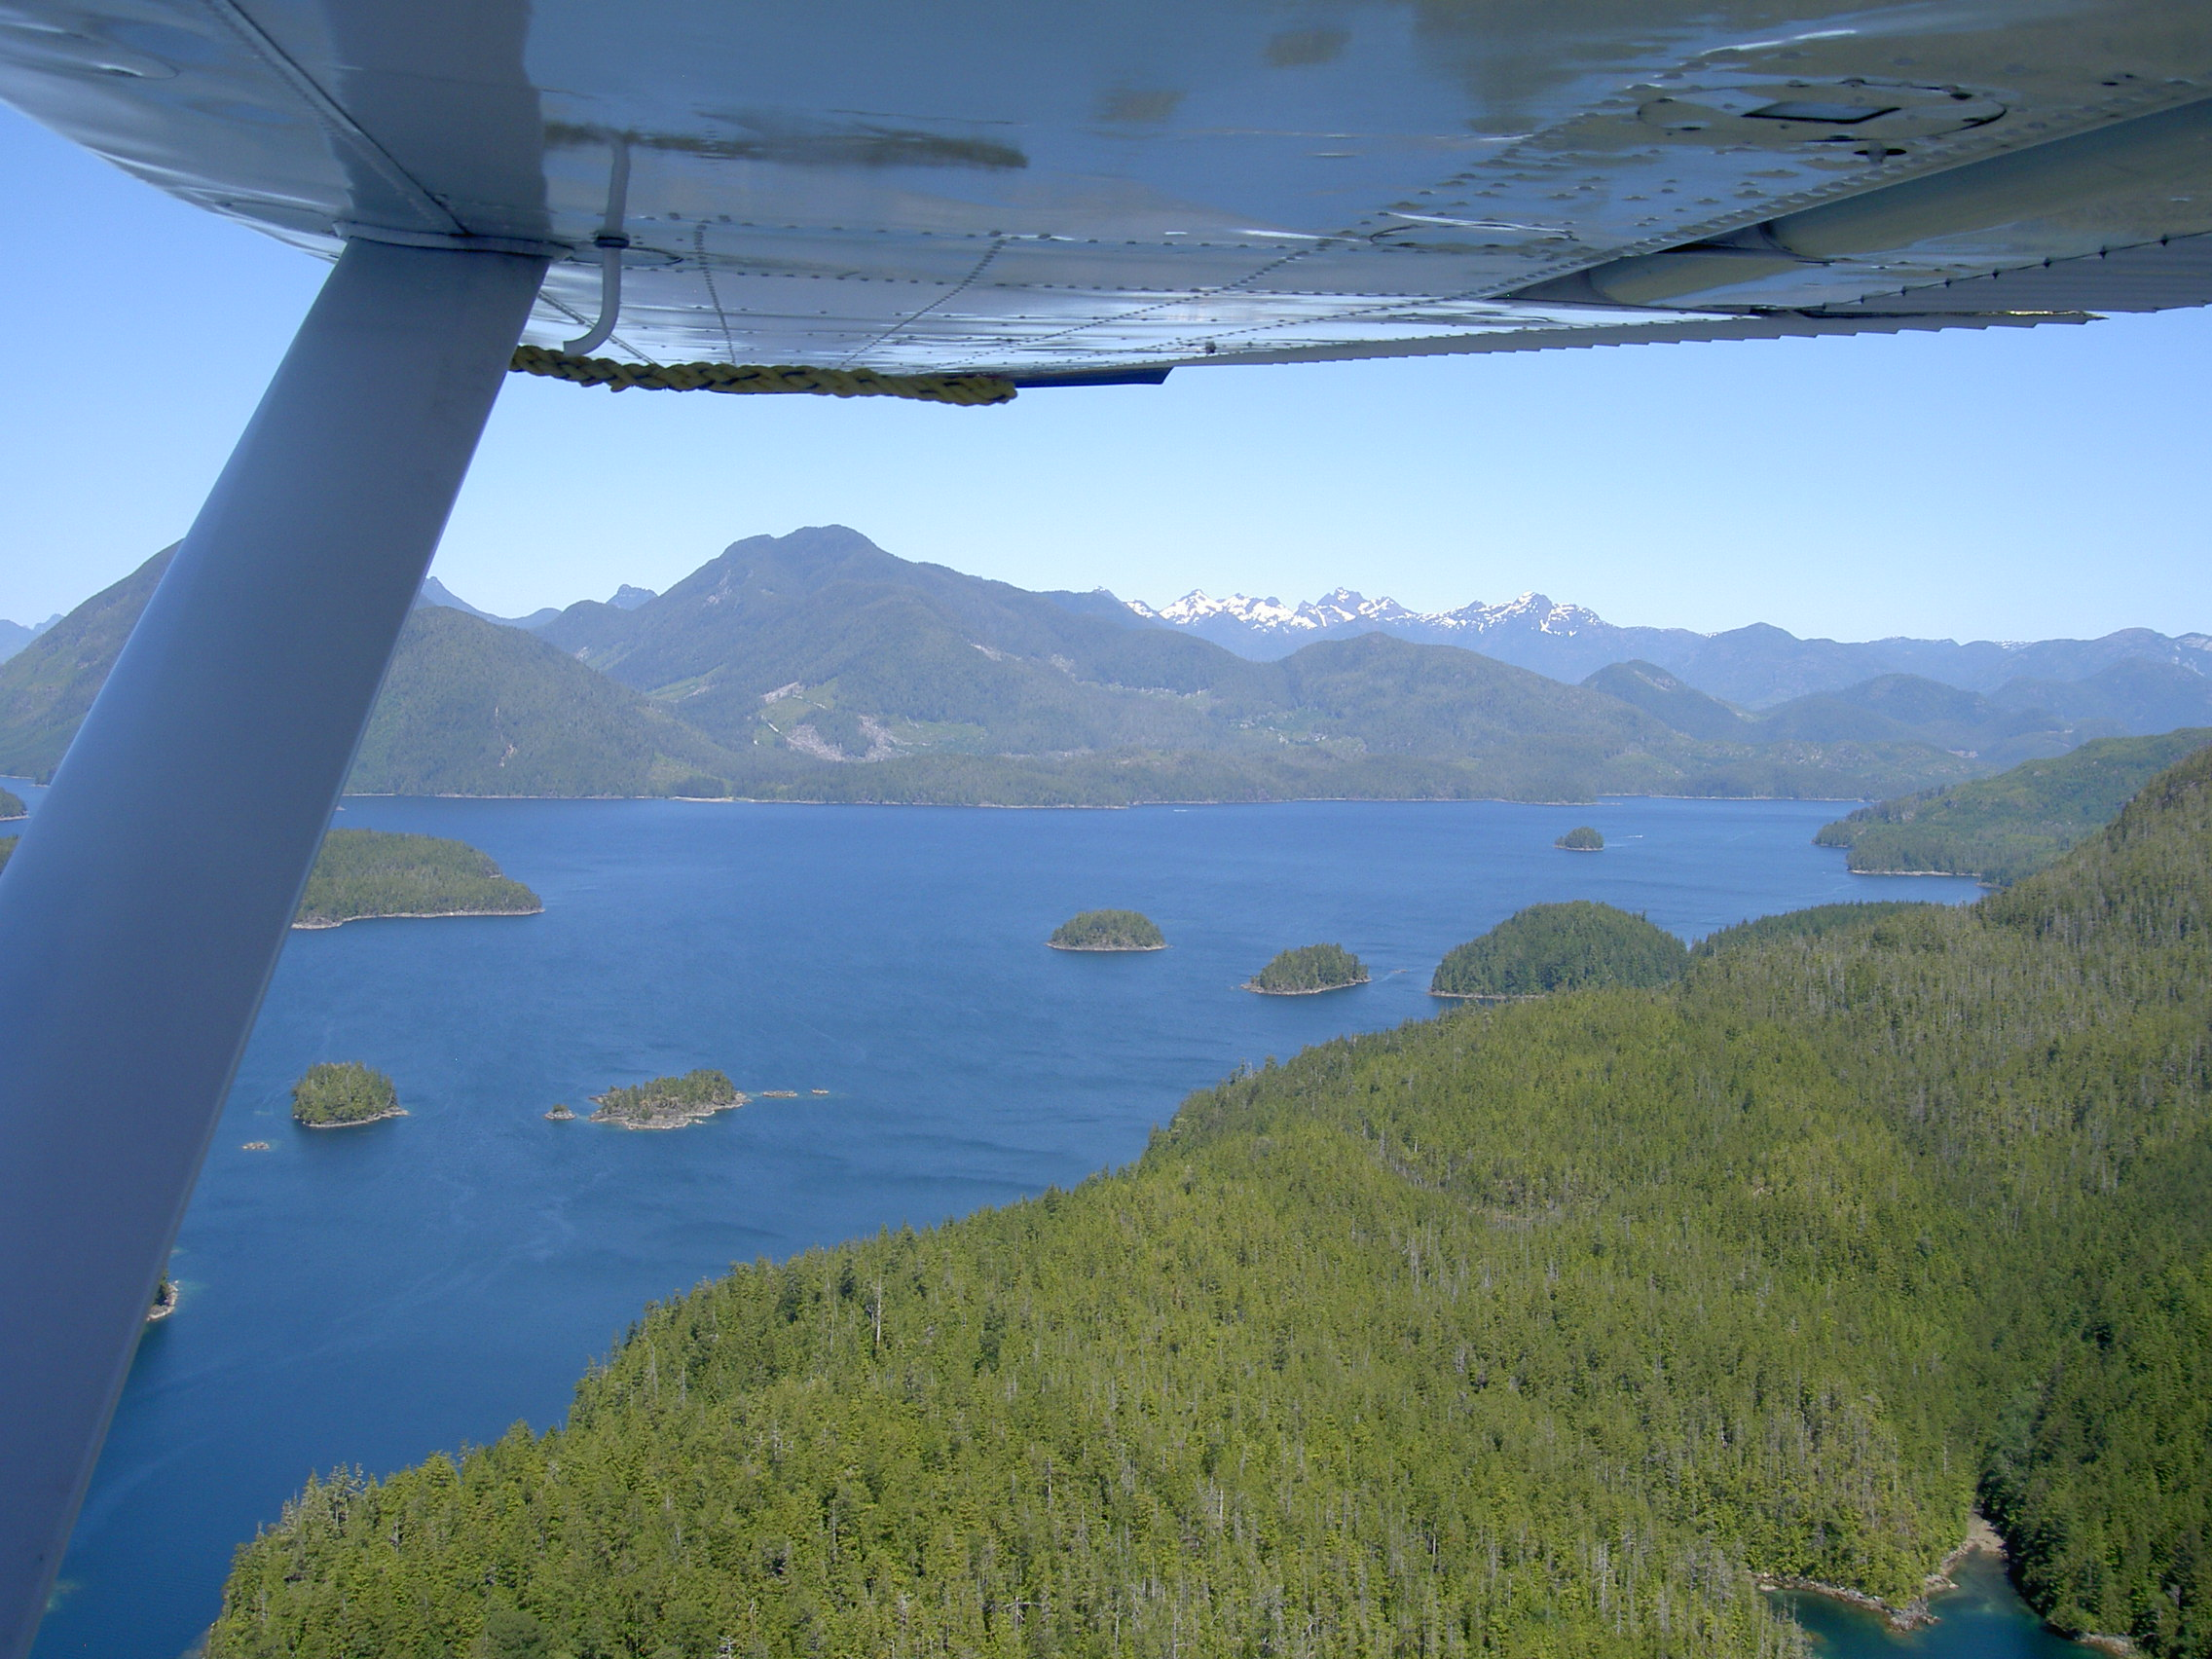 Nootka.view from plane